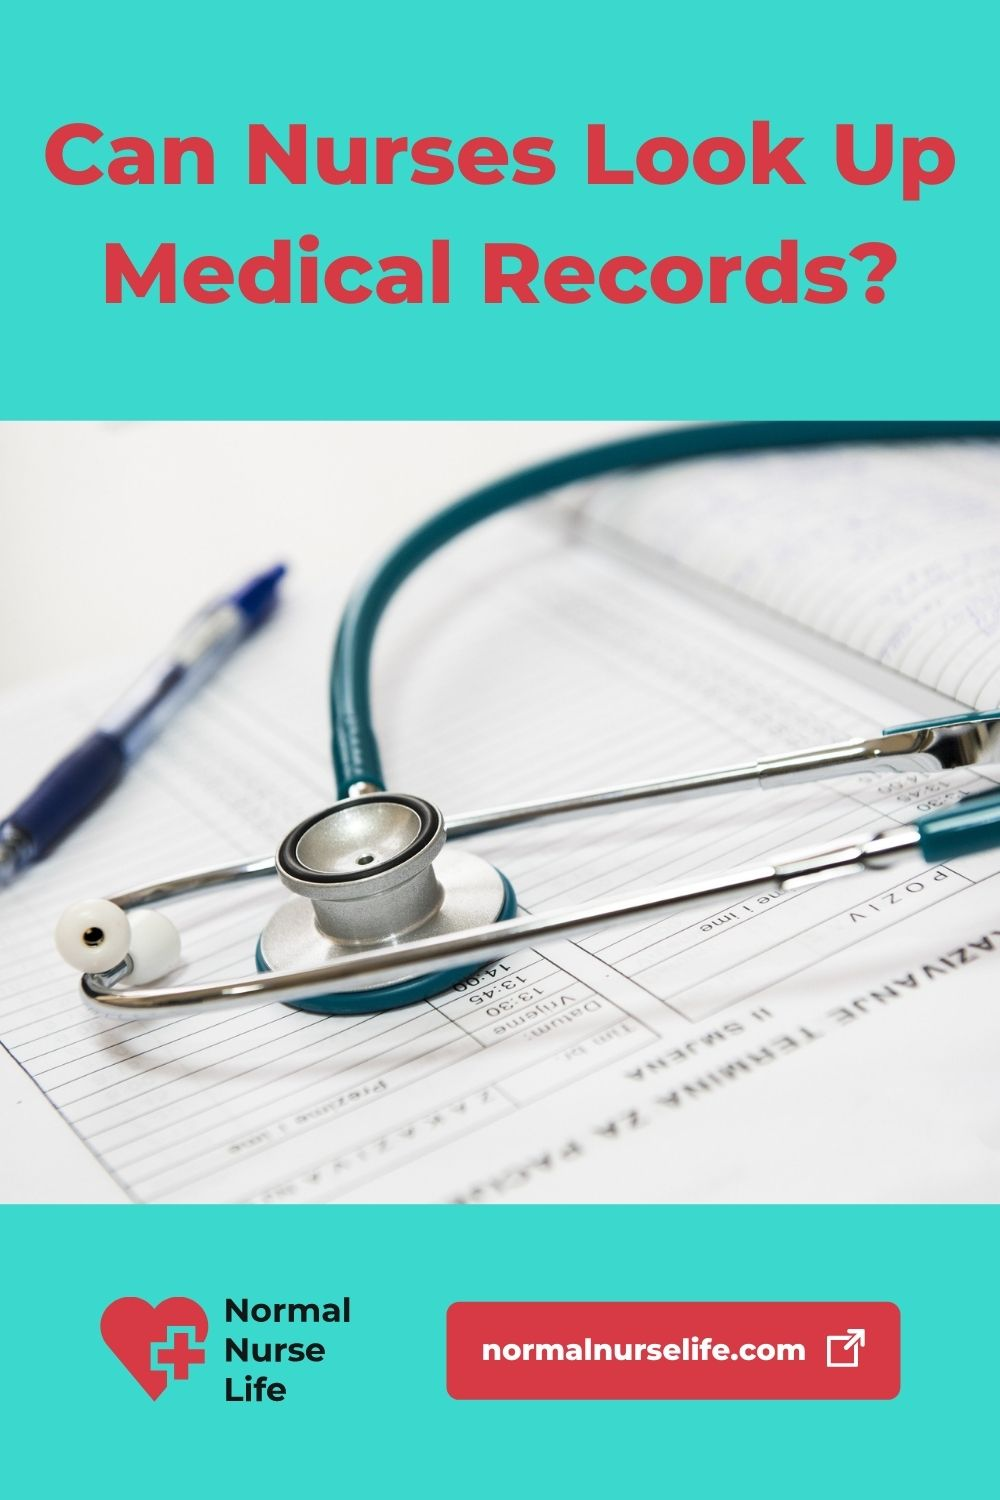 Can nurses look up medical records or not